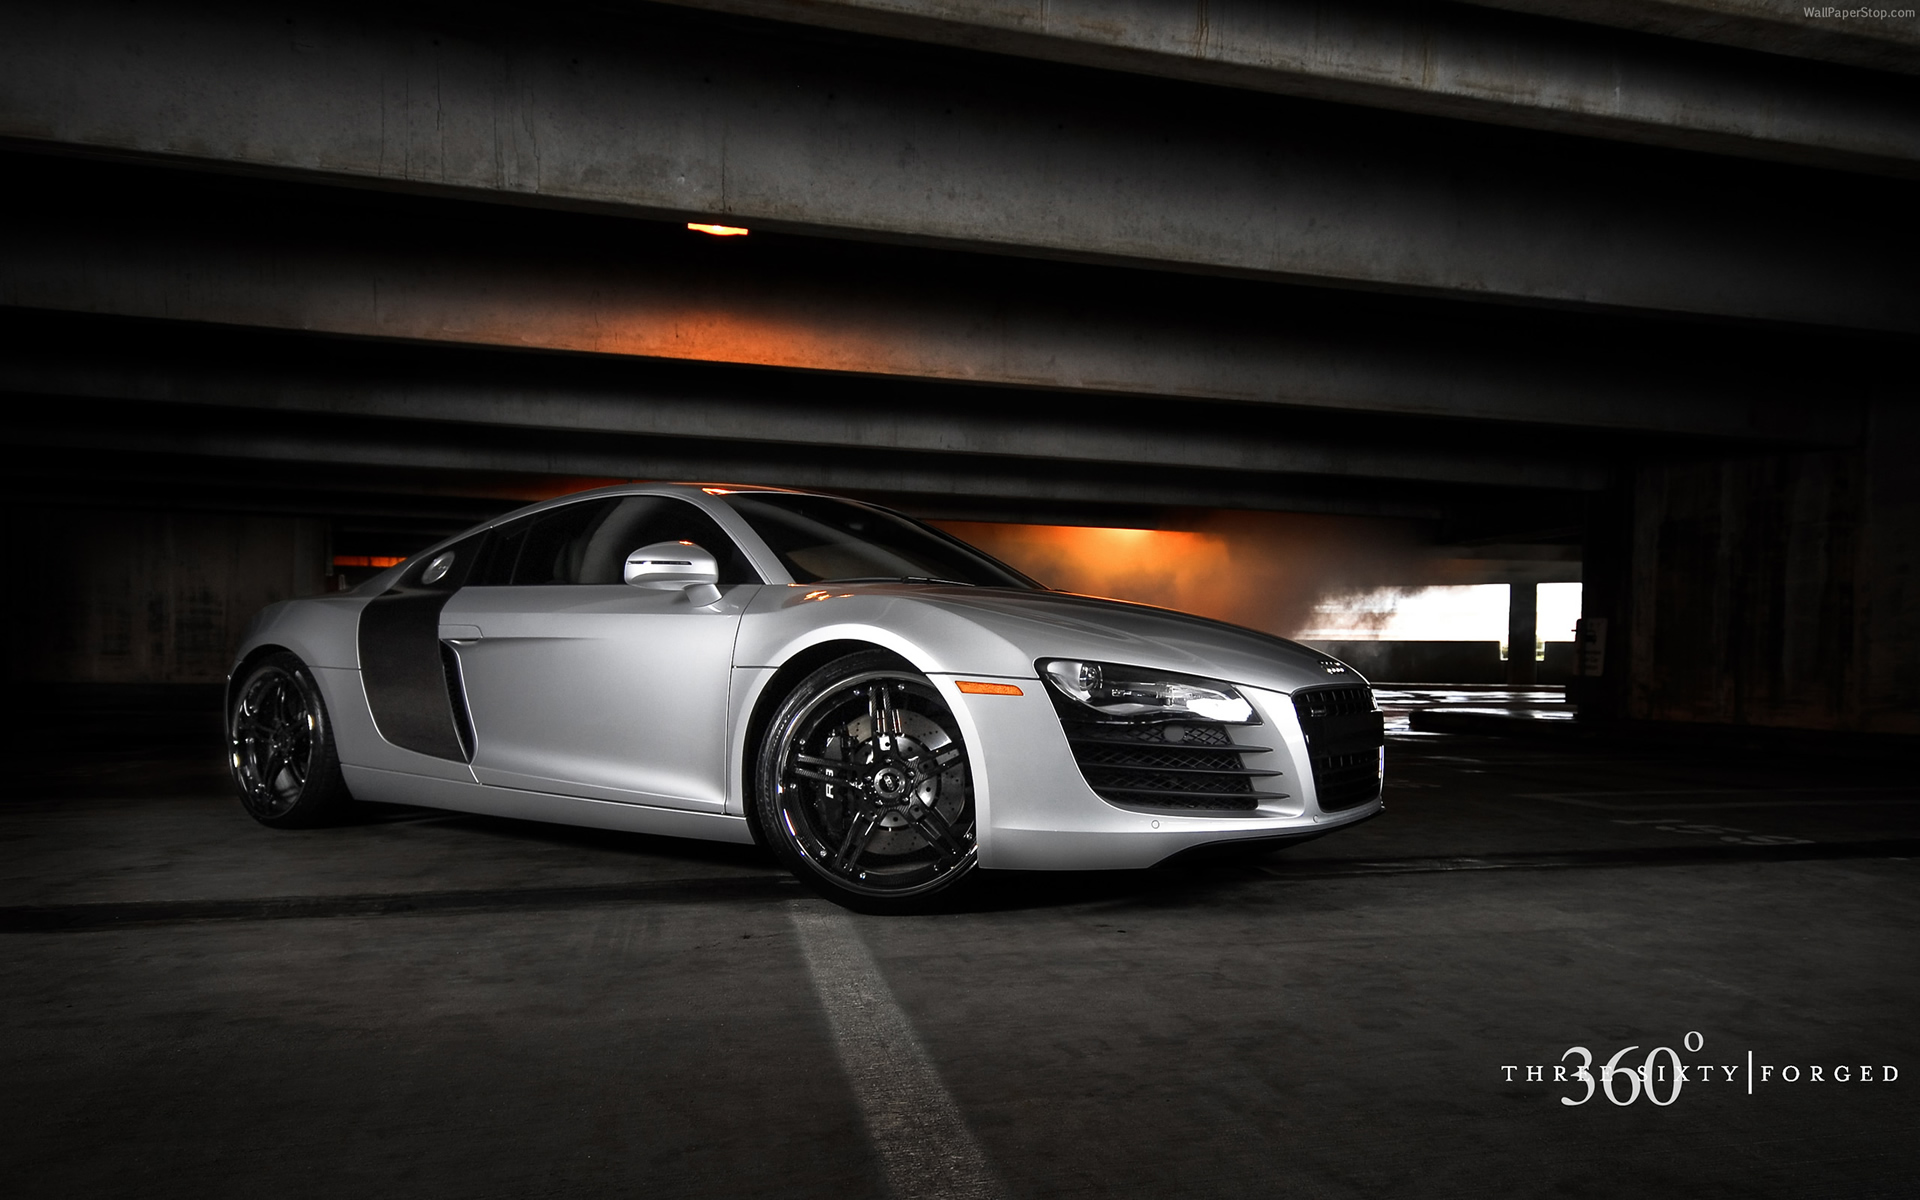 73 Audi R8 Wallpaper Hd On Wallpapersafari